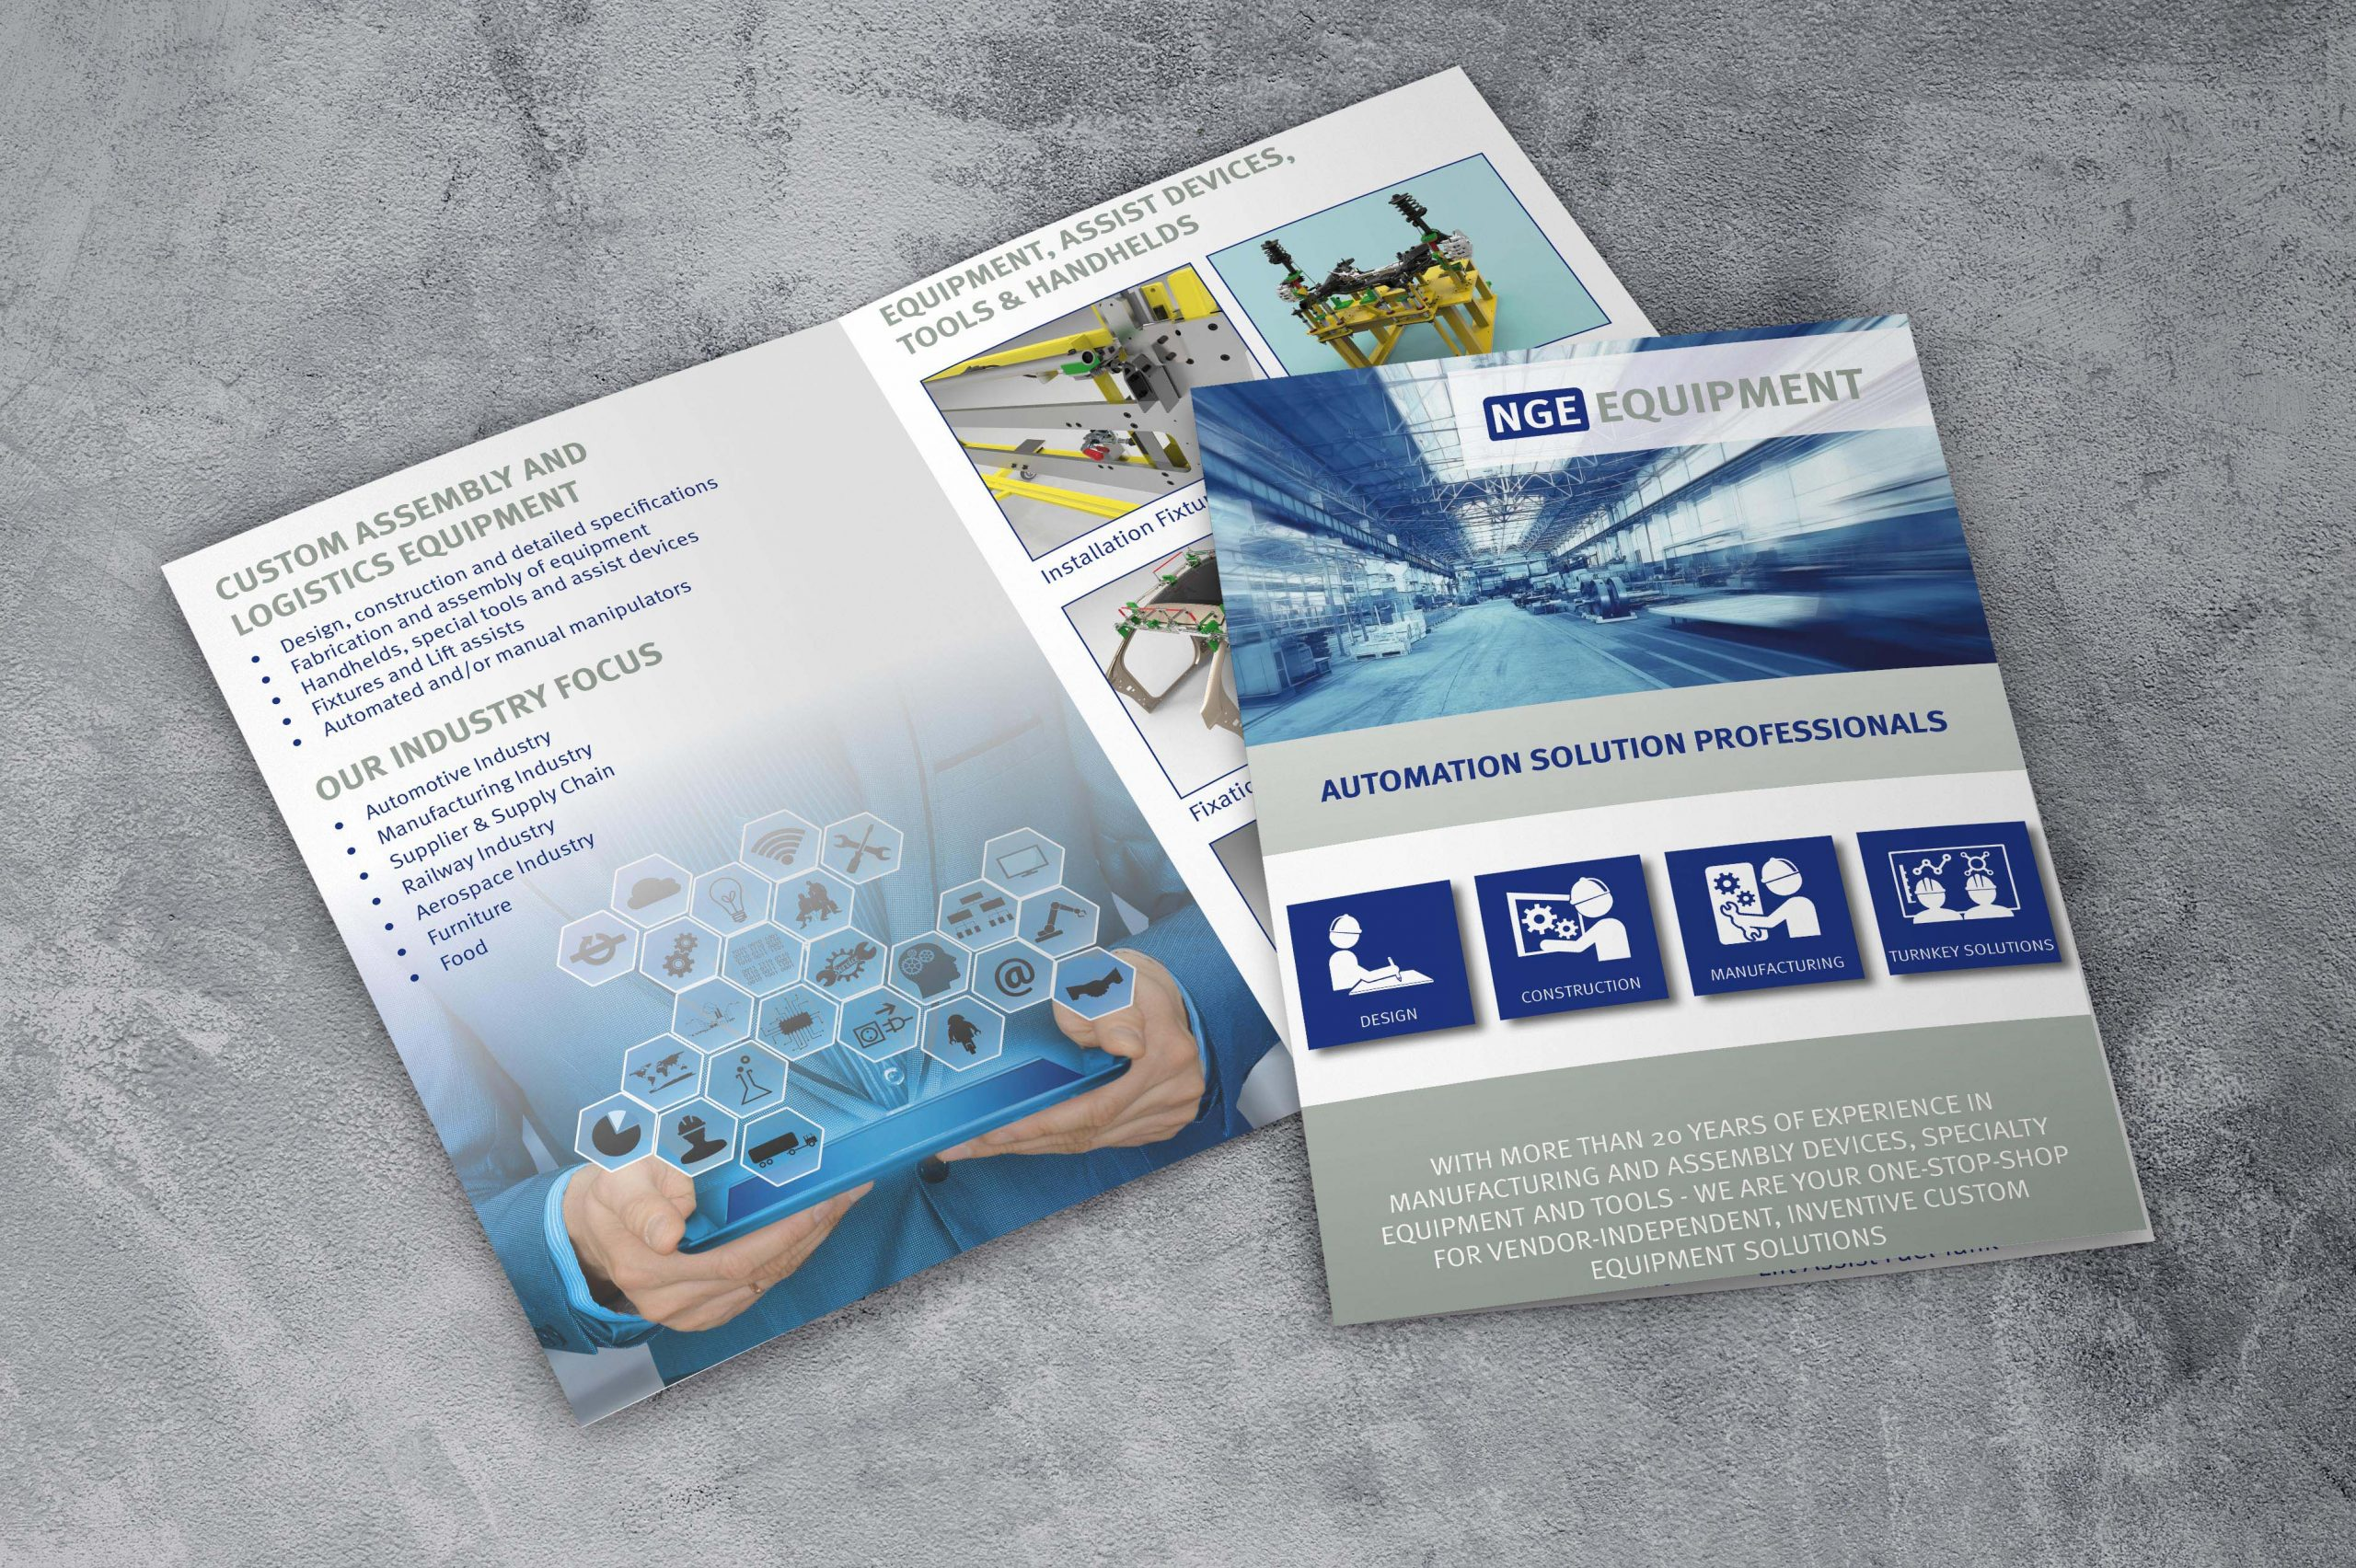 flyer with 4 pages lying on concrete floor